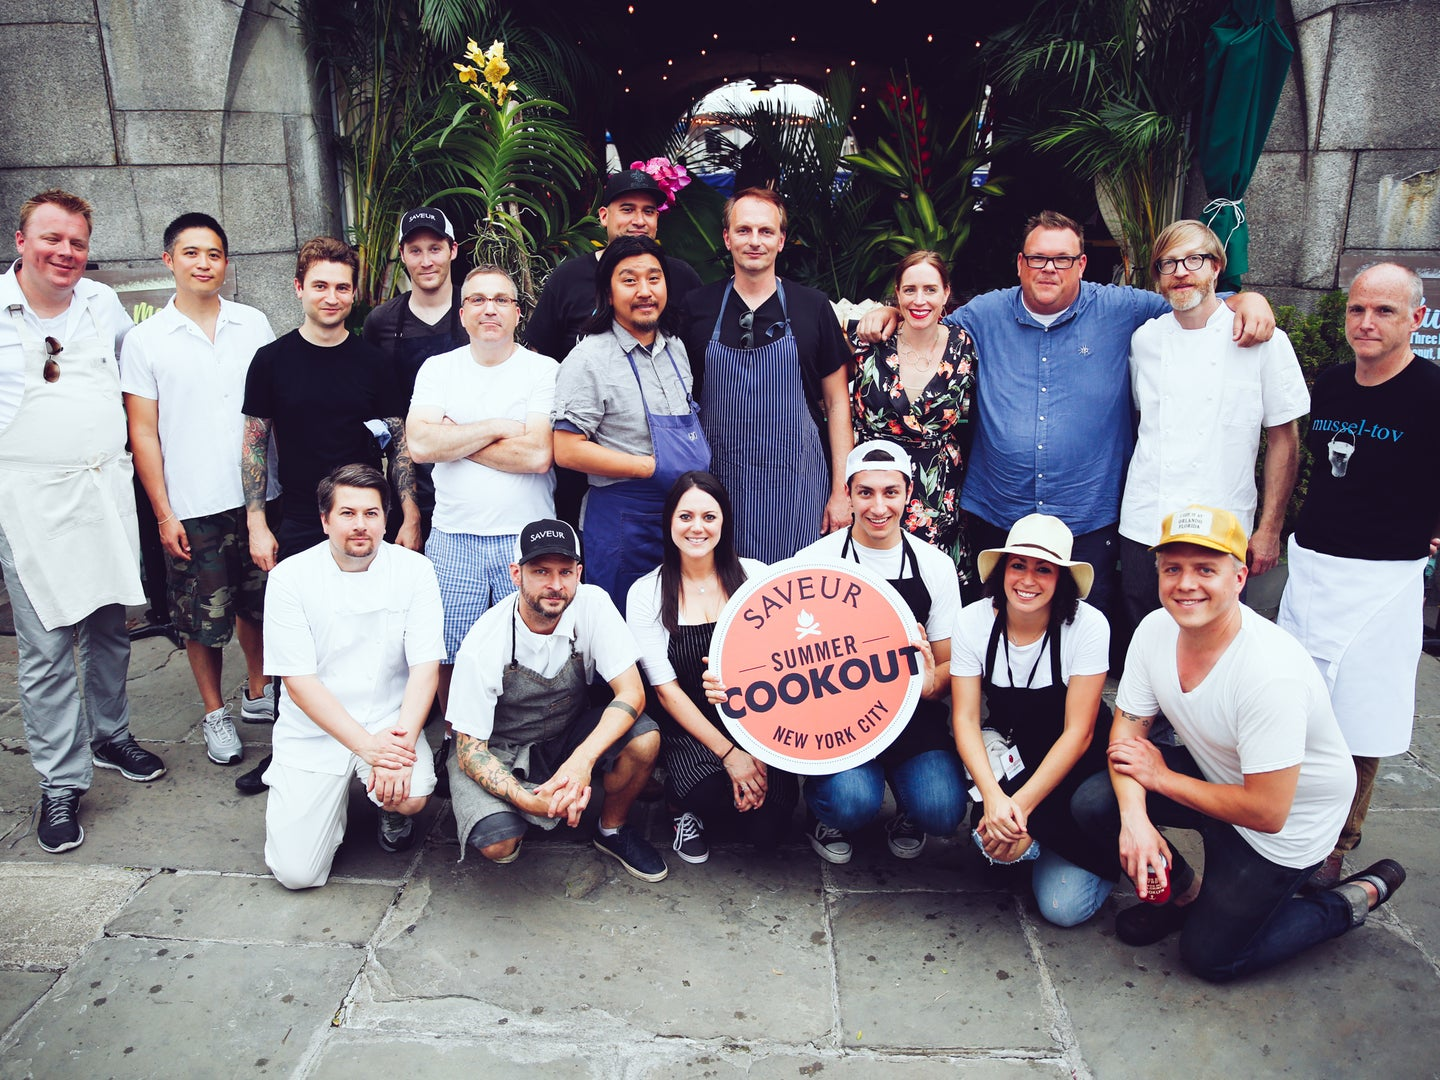 Scenes from the 6th Annual SAVEUR Summer Cookout